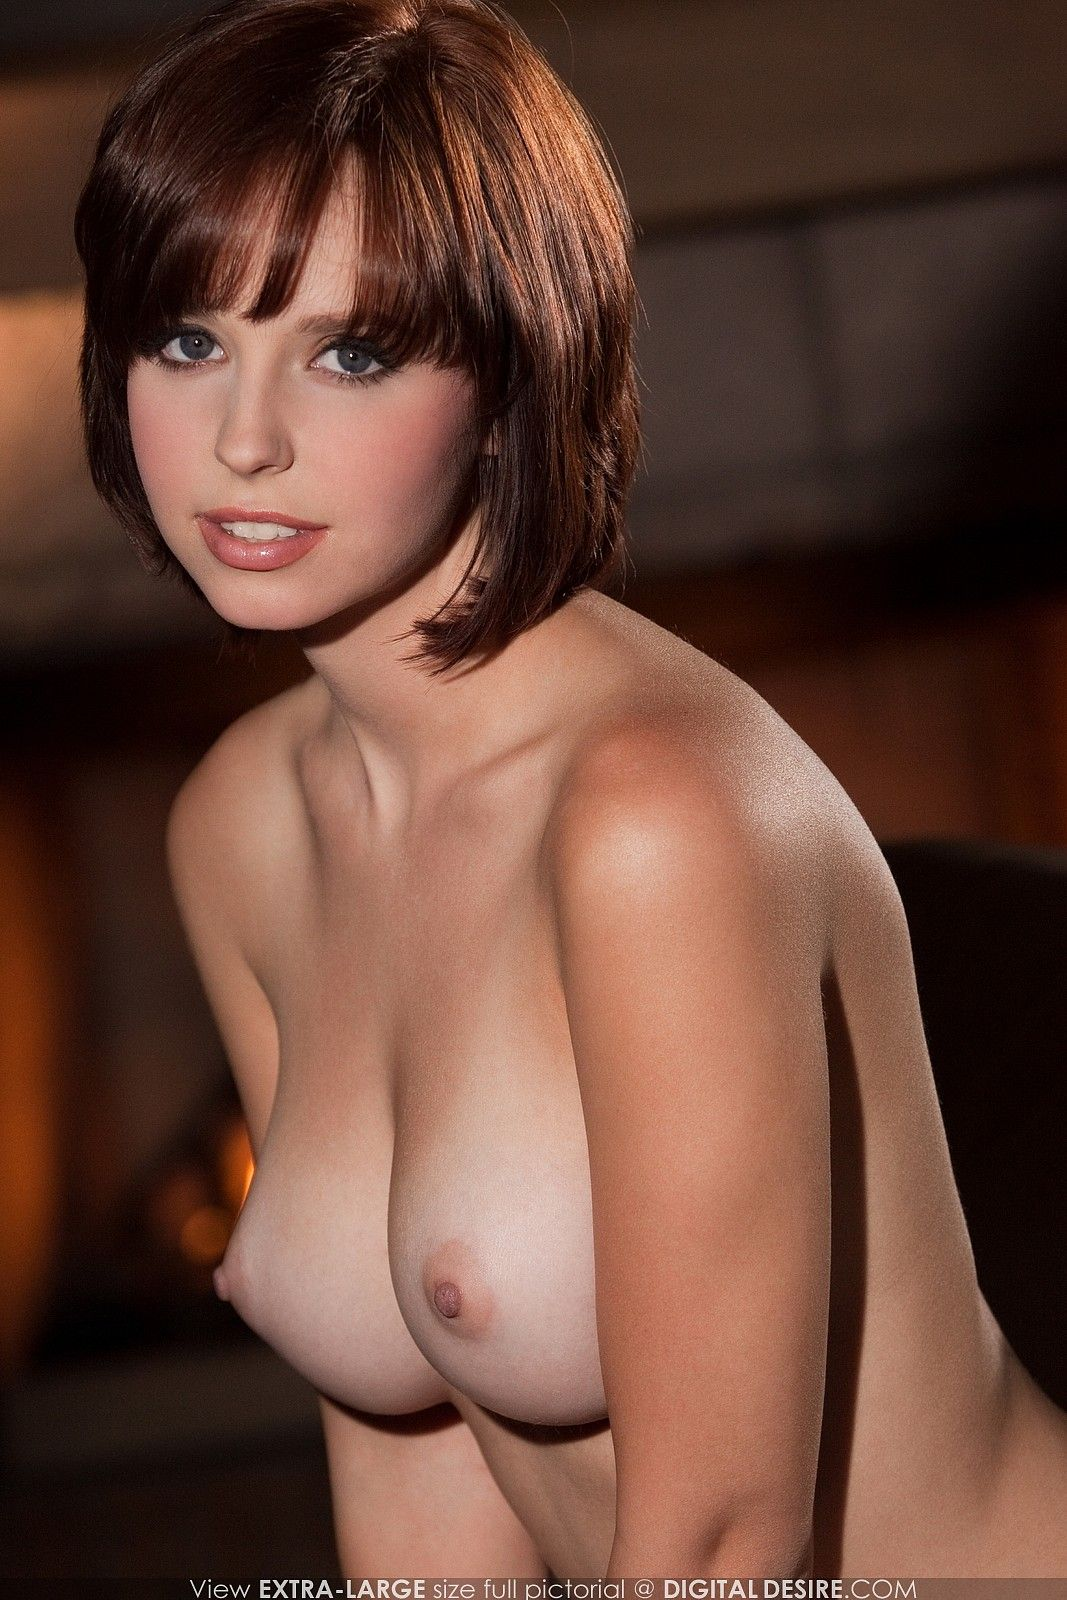 78 images about Sexy on Pinterest Sexy Sexy hot and Sexy women